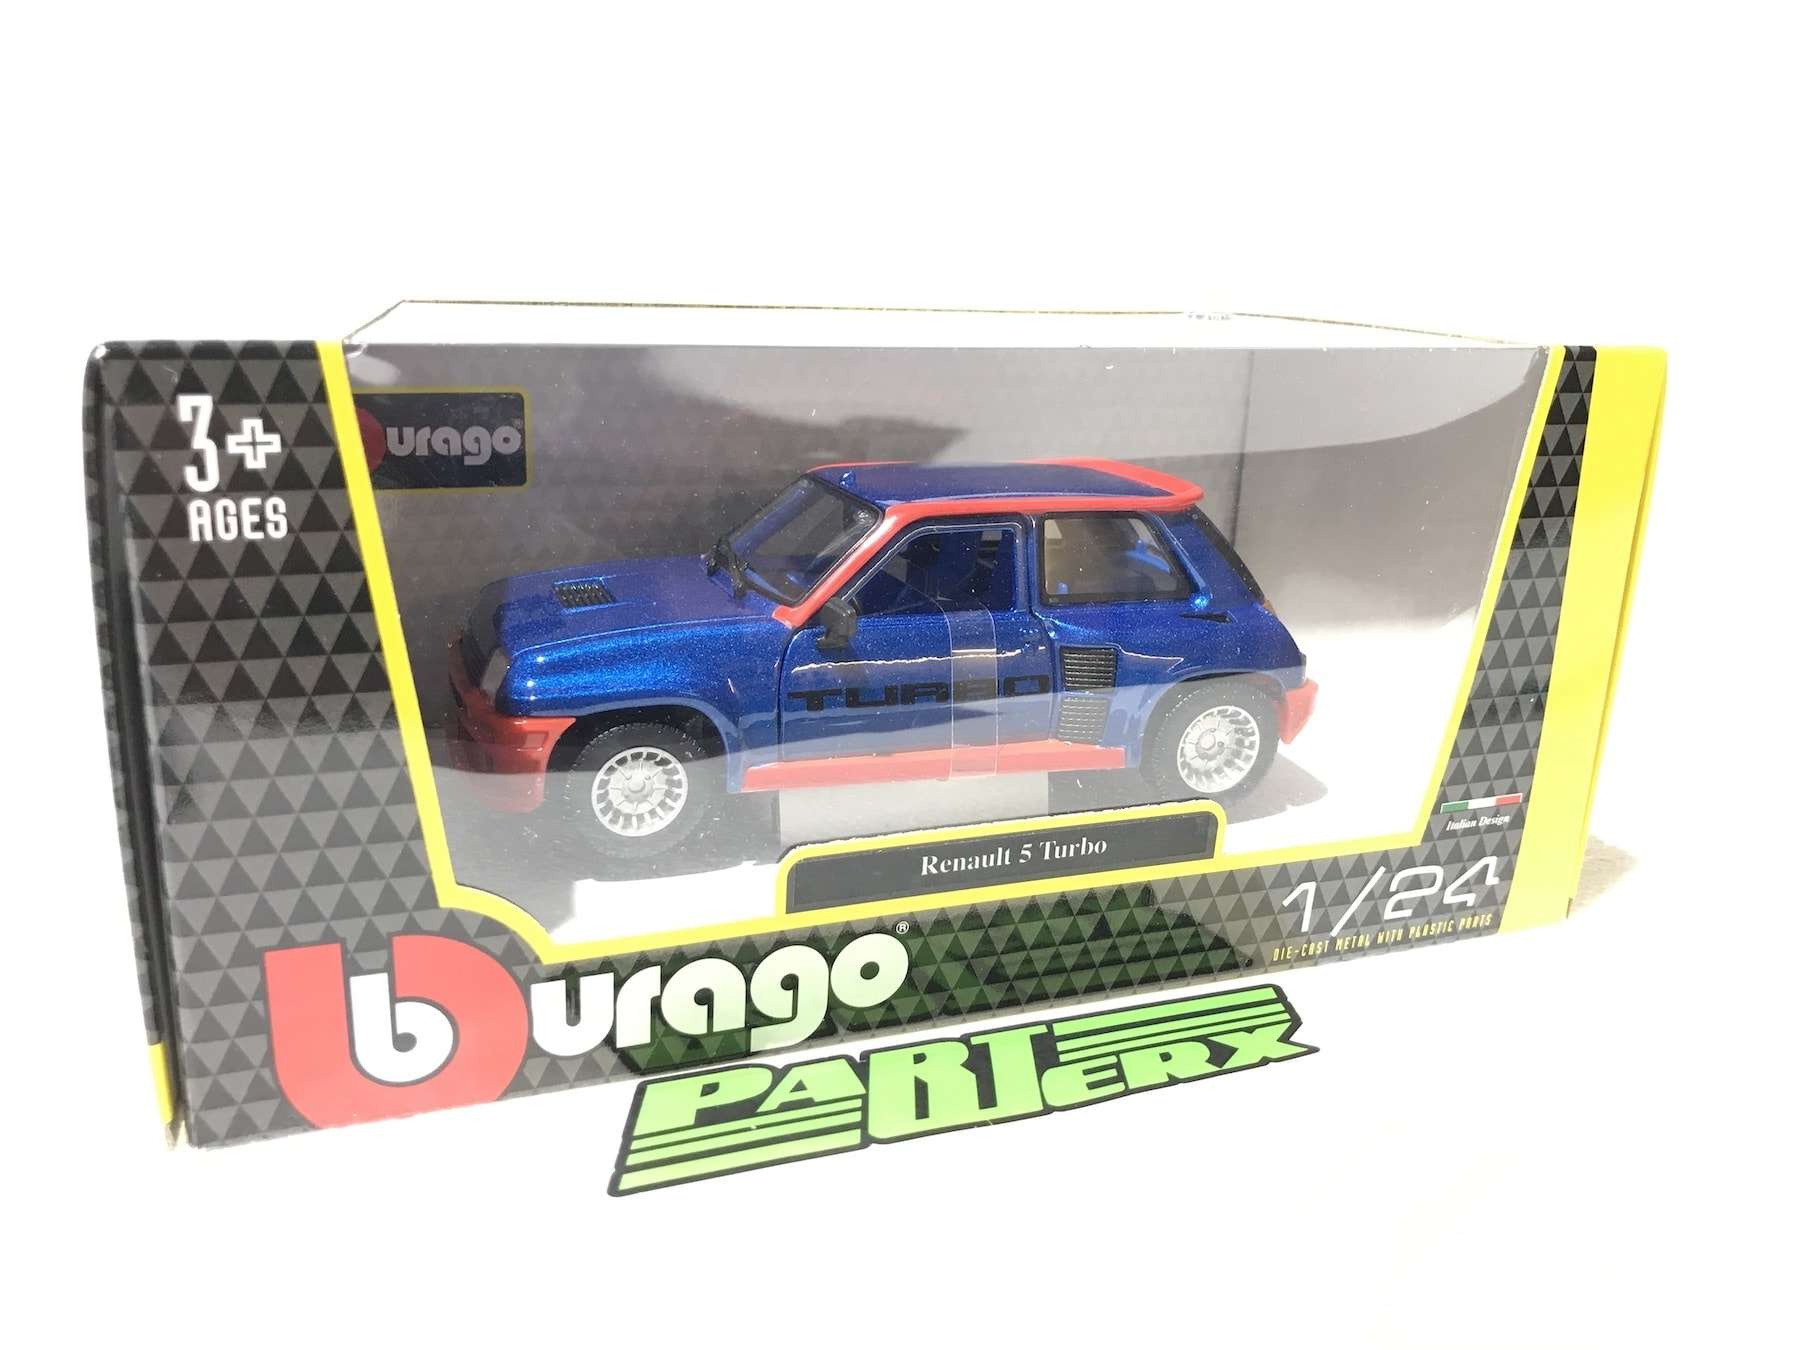 Renault 5 Turbo 1:24 Scale Model Toy Christmas Gift Xmas Birthday Present